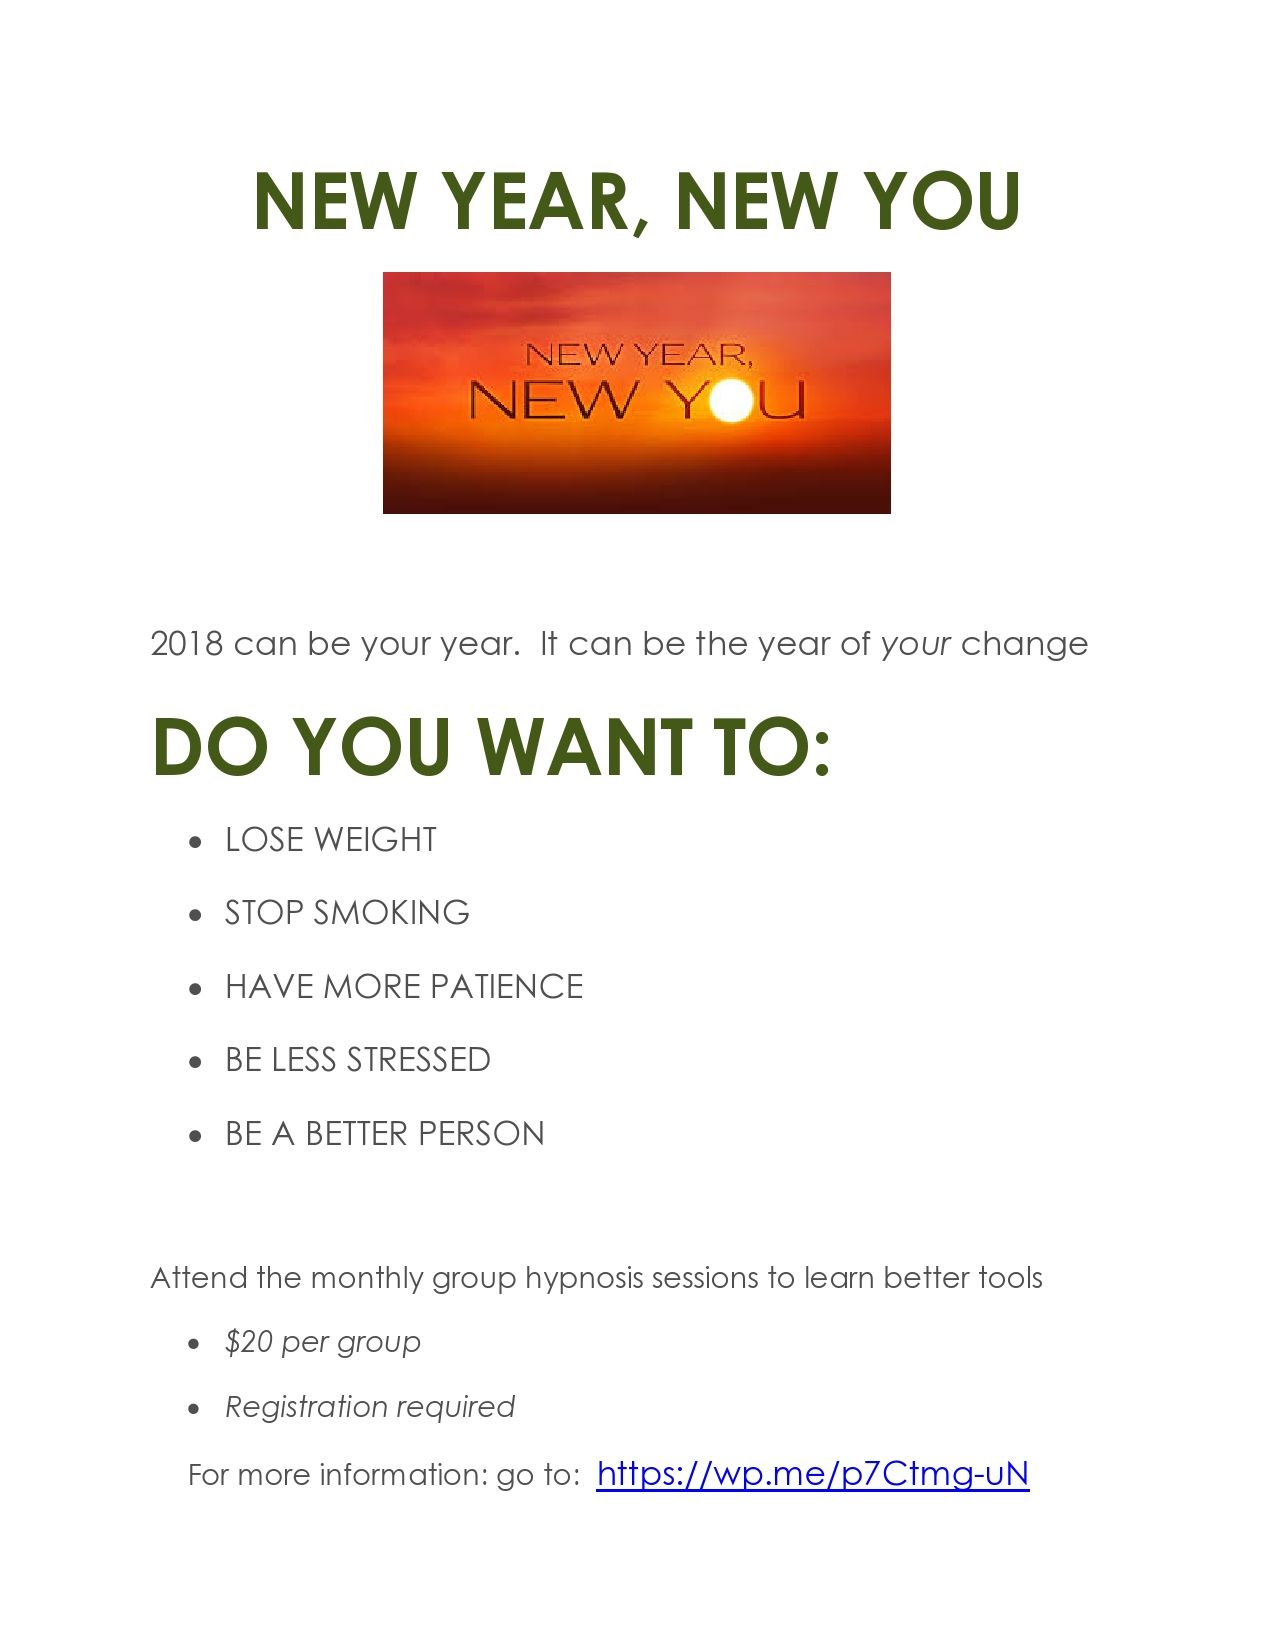 Do You Want To Better Calmer And More Successful In The New Year Attend A Hypnosis Group New Groups Forming Hypnosis Stress New You